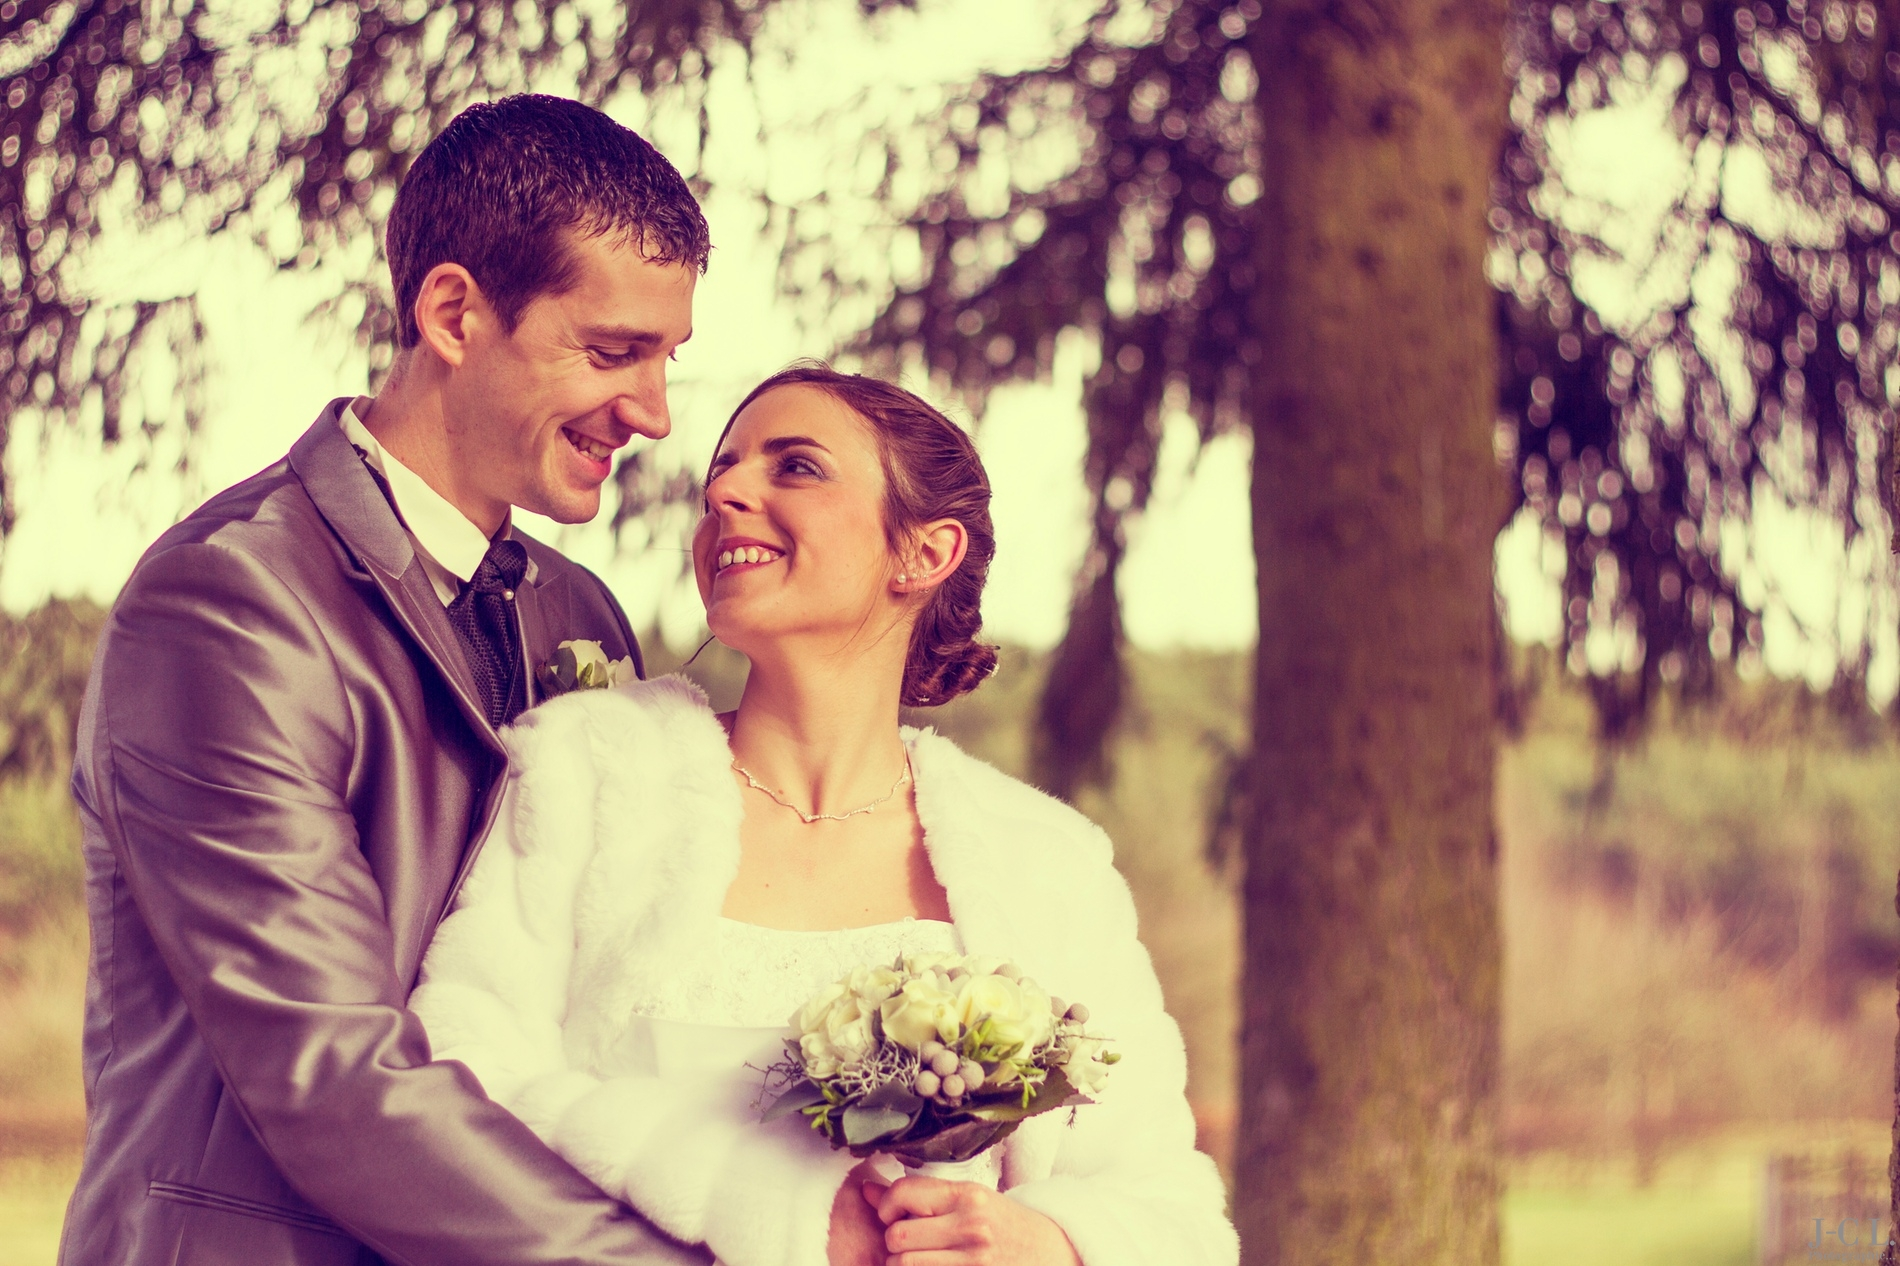 photographie mariage chalons en champagne - Photographe Mariage Chalons En Champagne